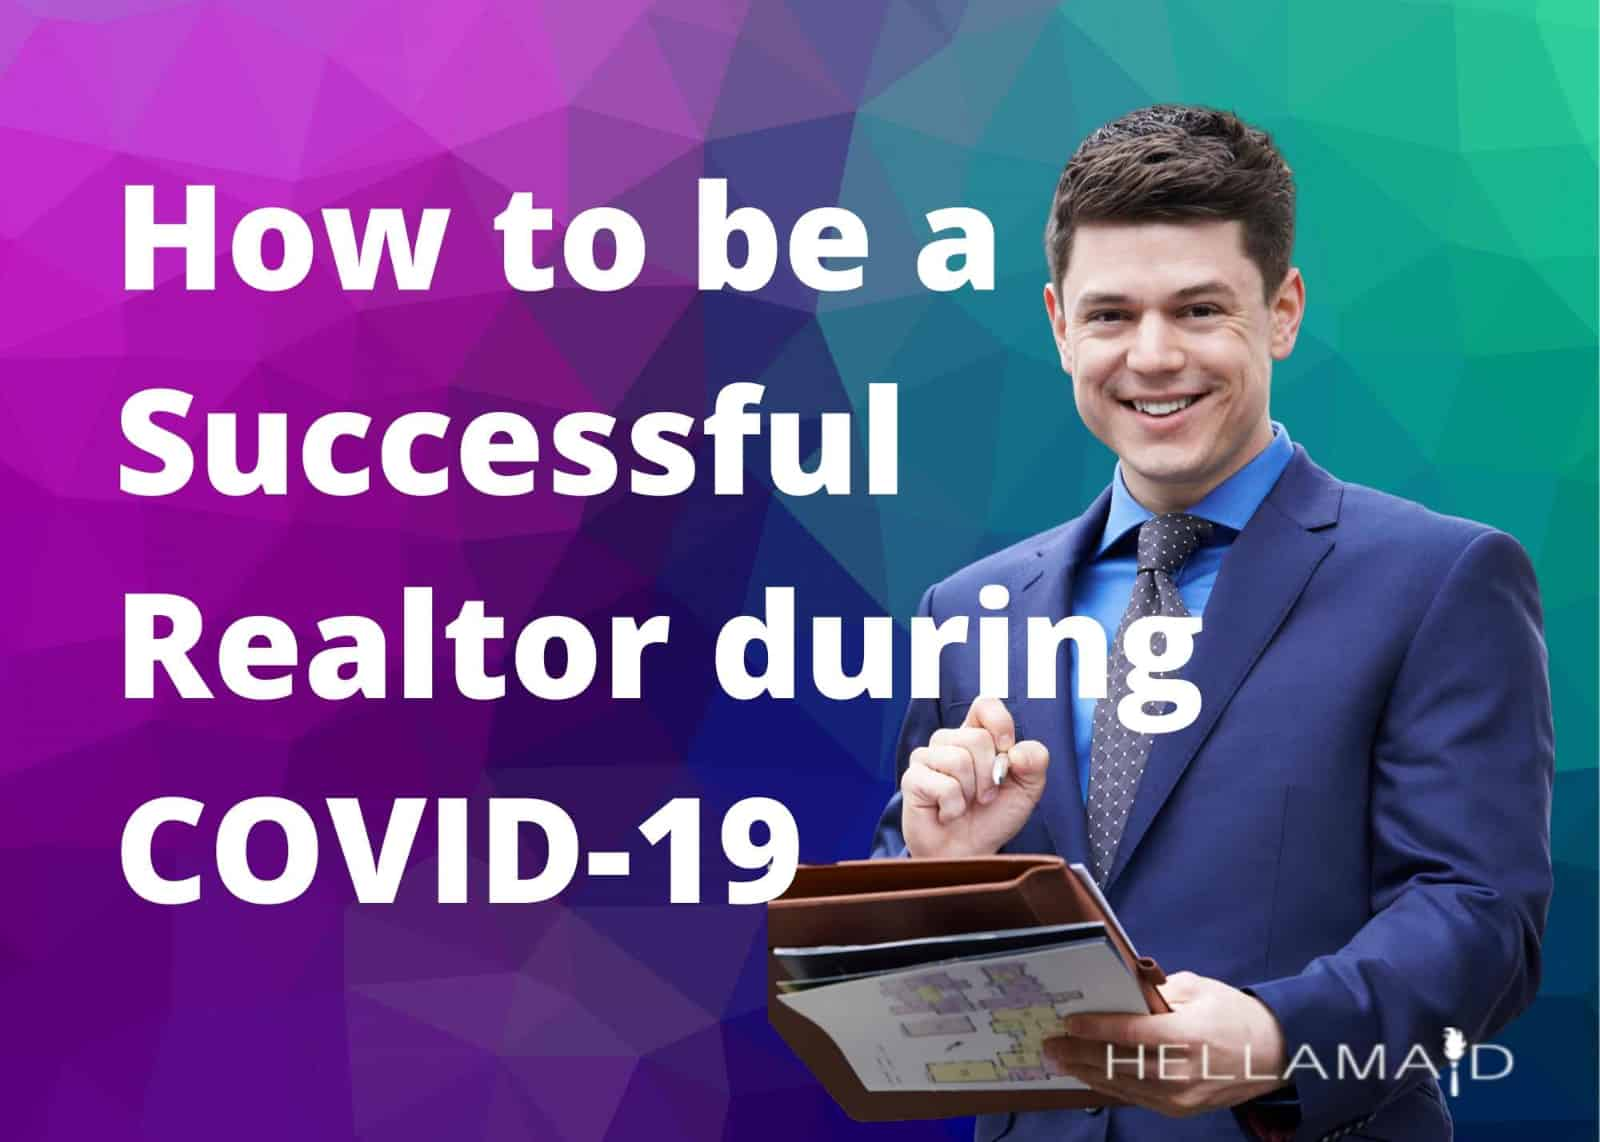 How to be a Successful Realtor During COVID-19